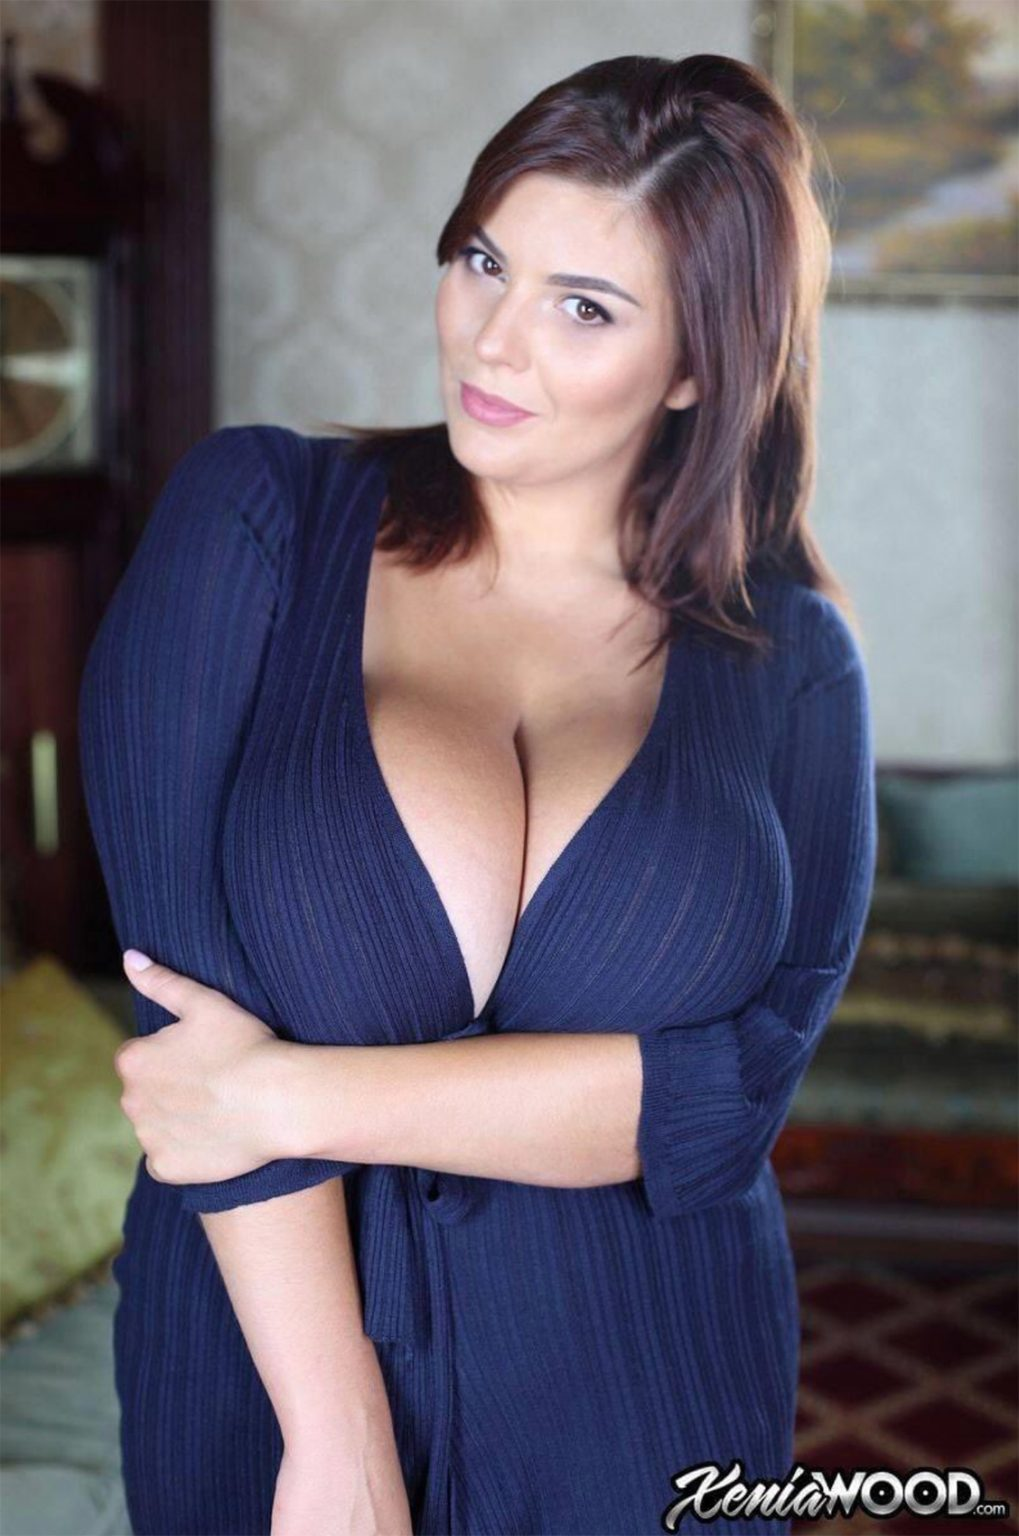 xenia-wood21 - Big Chested Models